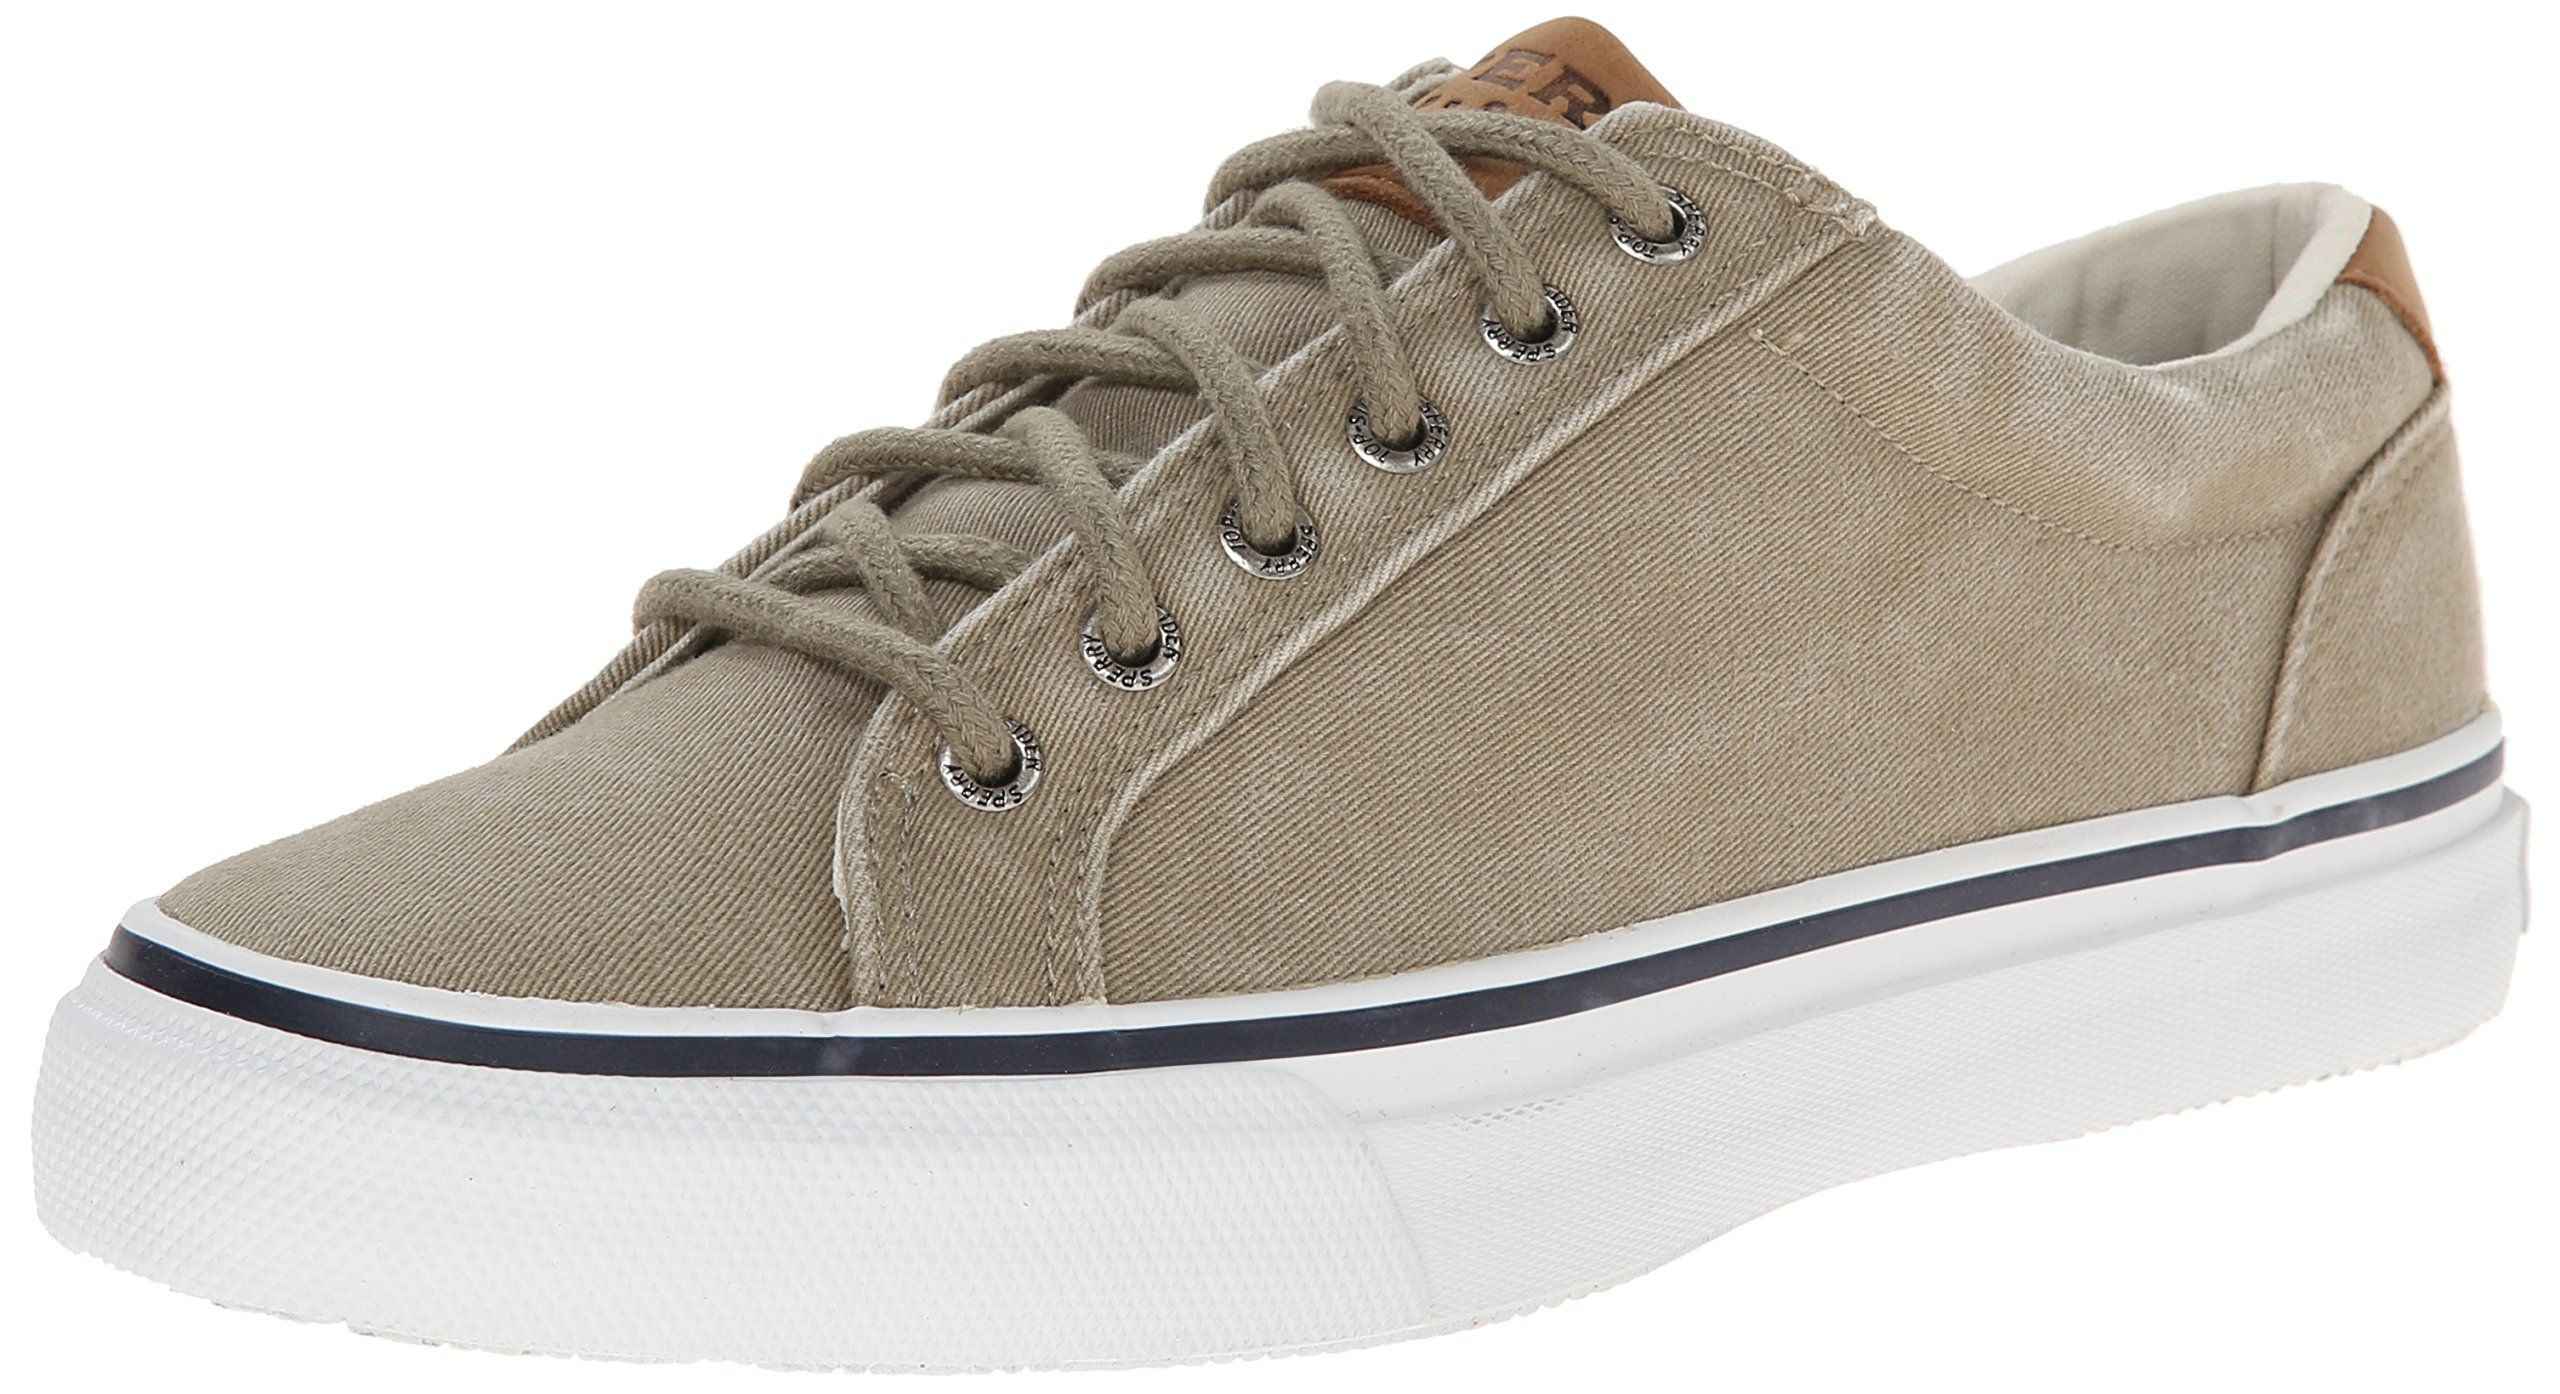 7fb9c52c4288 Sperry Top-Sider Men s Striper LTT Fashion Sneaker